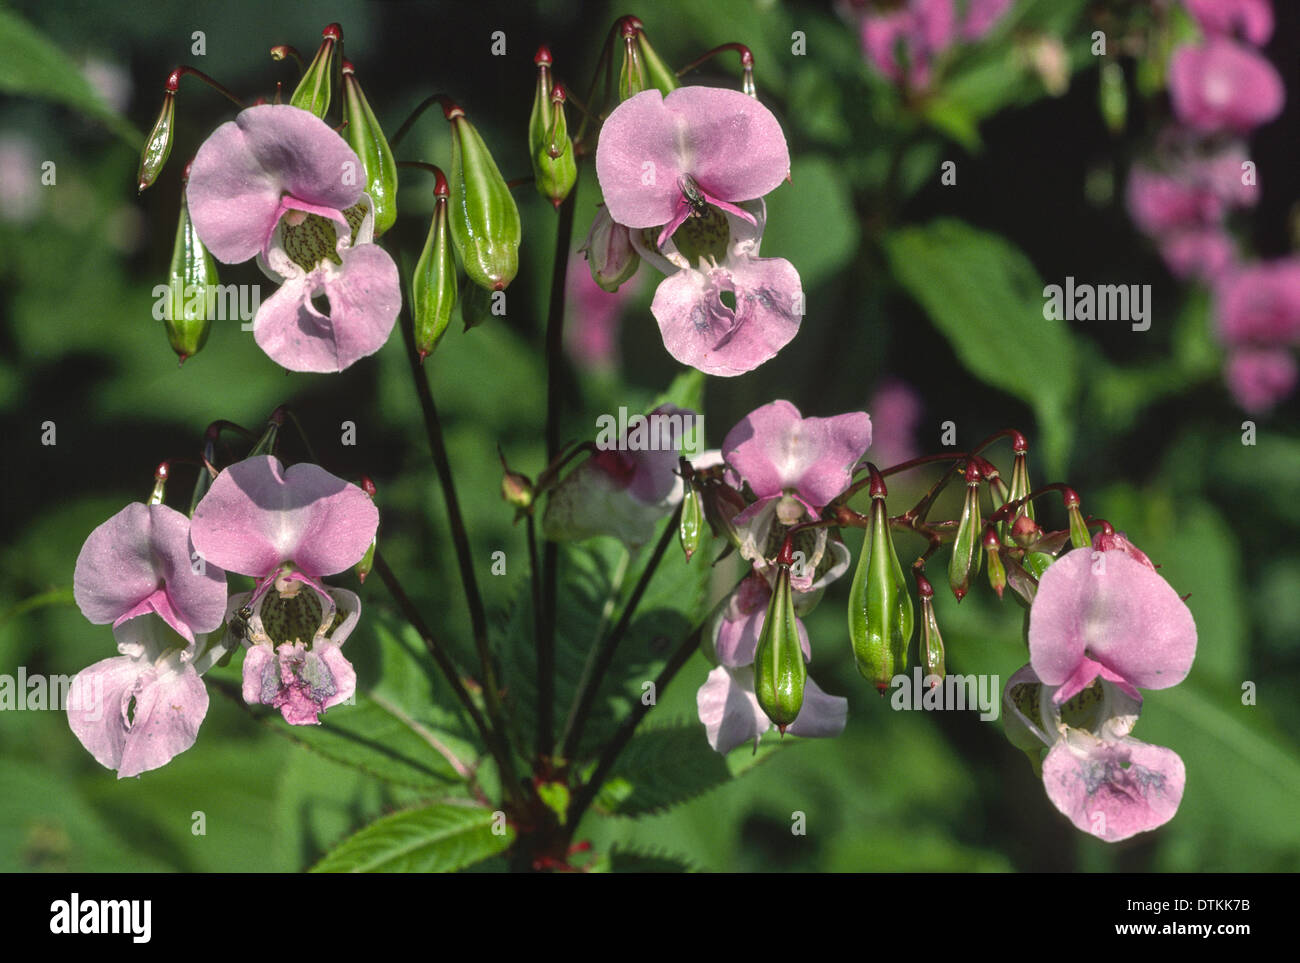 Pink Flowers And Green Seed Pods Of The Himalayan Balsam Plant Stock